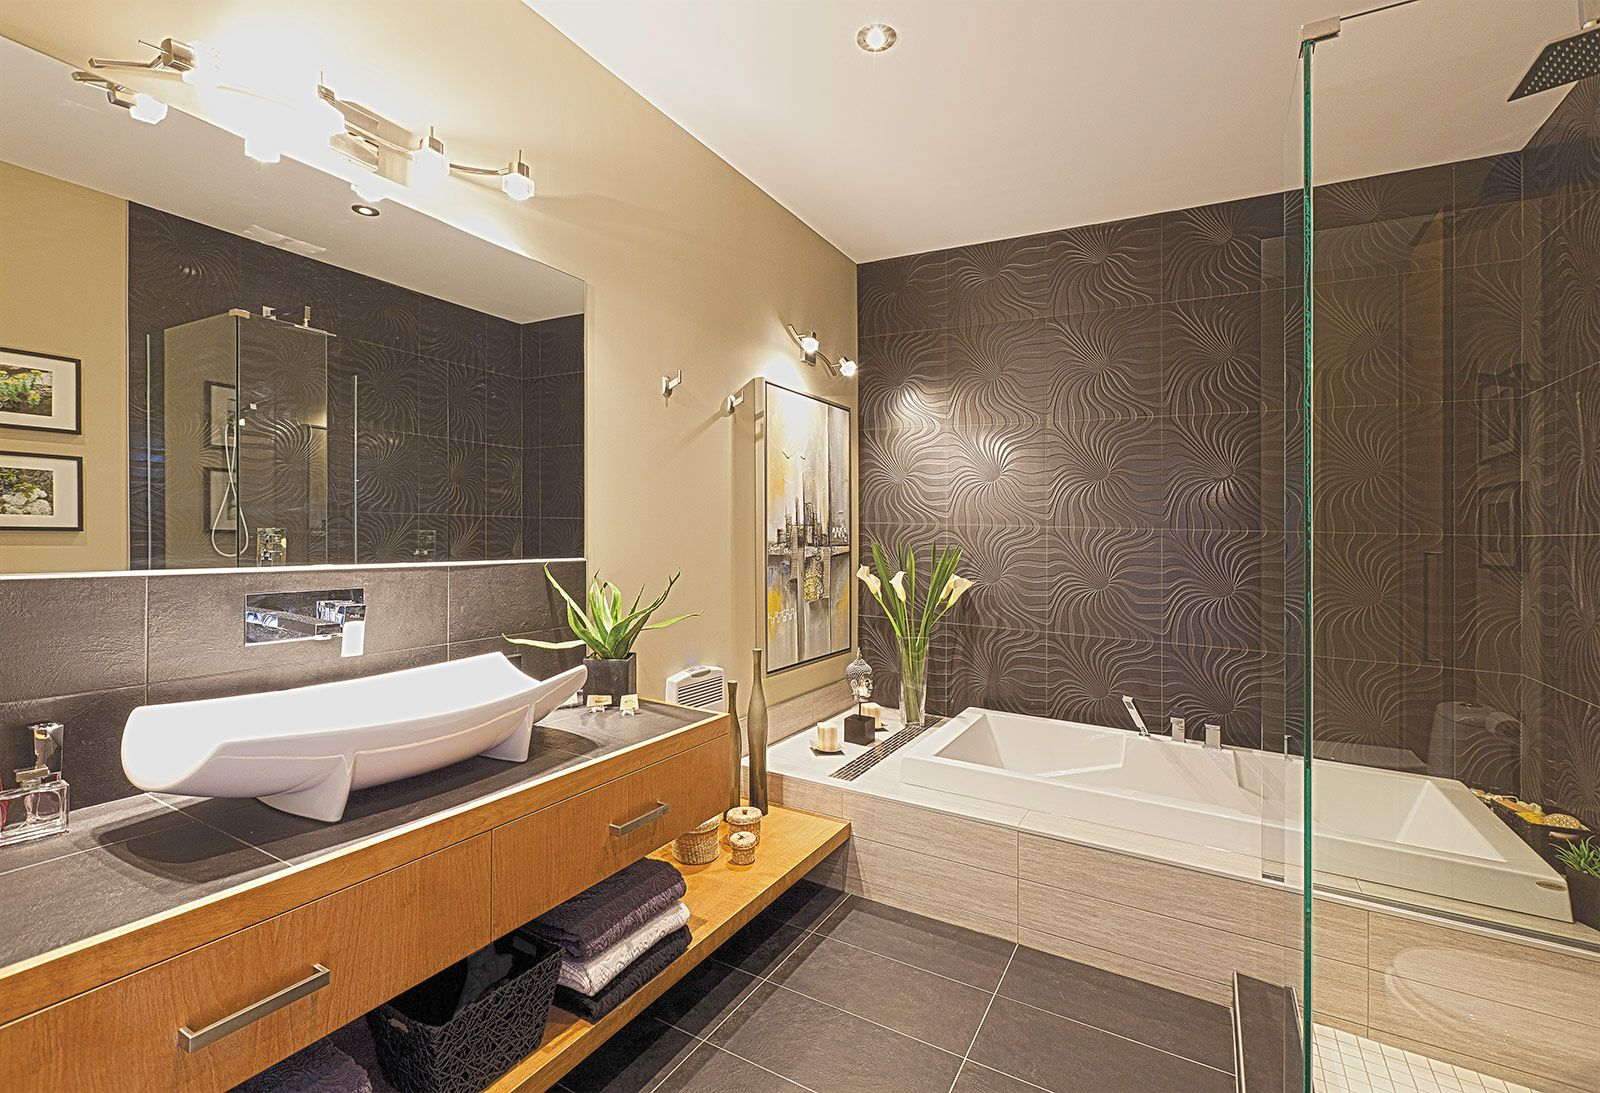 Idee renovation cuisine decoration amenagement renovation for Idee amenagement salle de bain